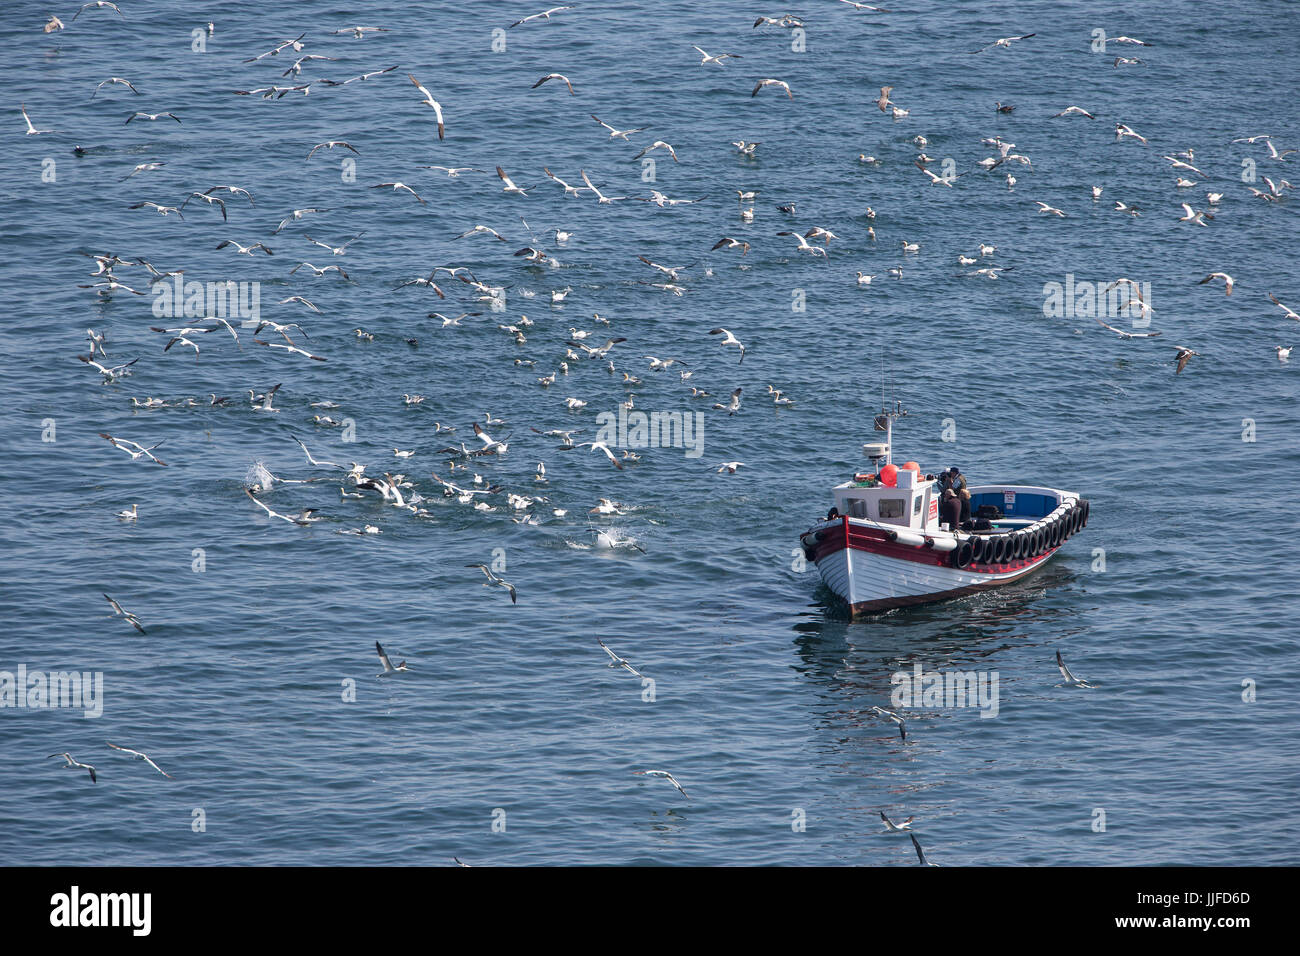 Gannets (Morus bassanus) plunge diving off the east coast of Yorkshire as photographers take pictures from pleasure - Stock Image